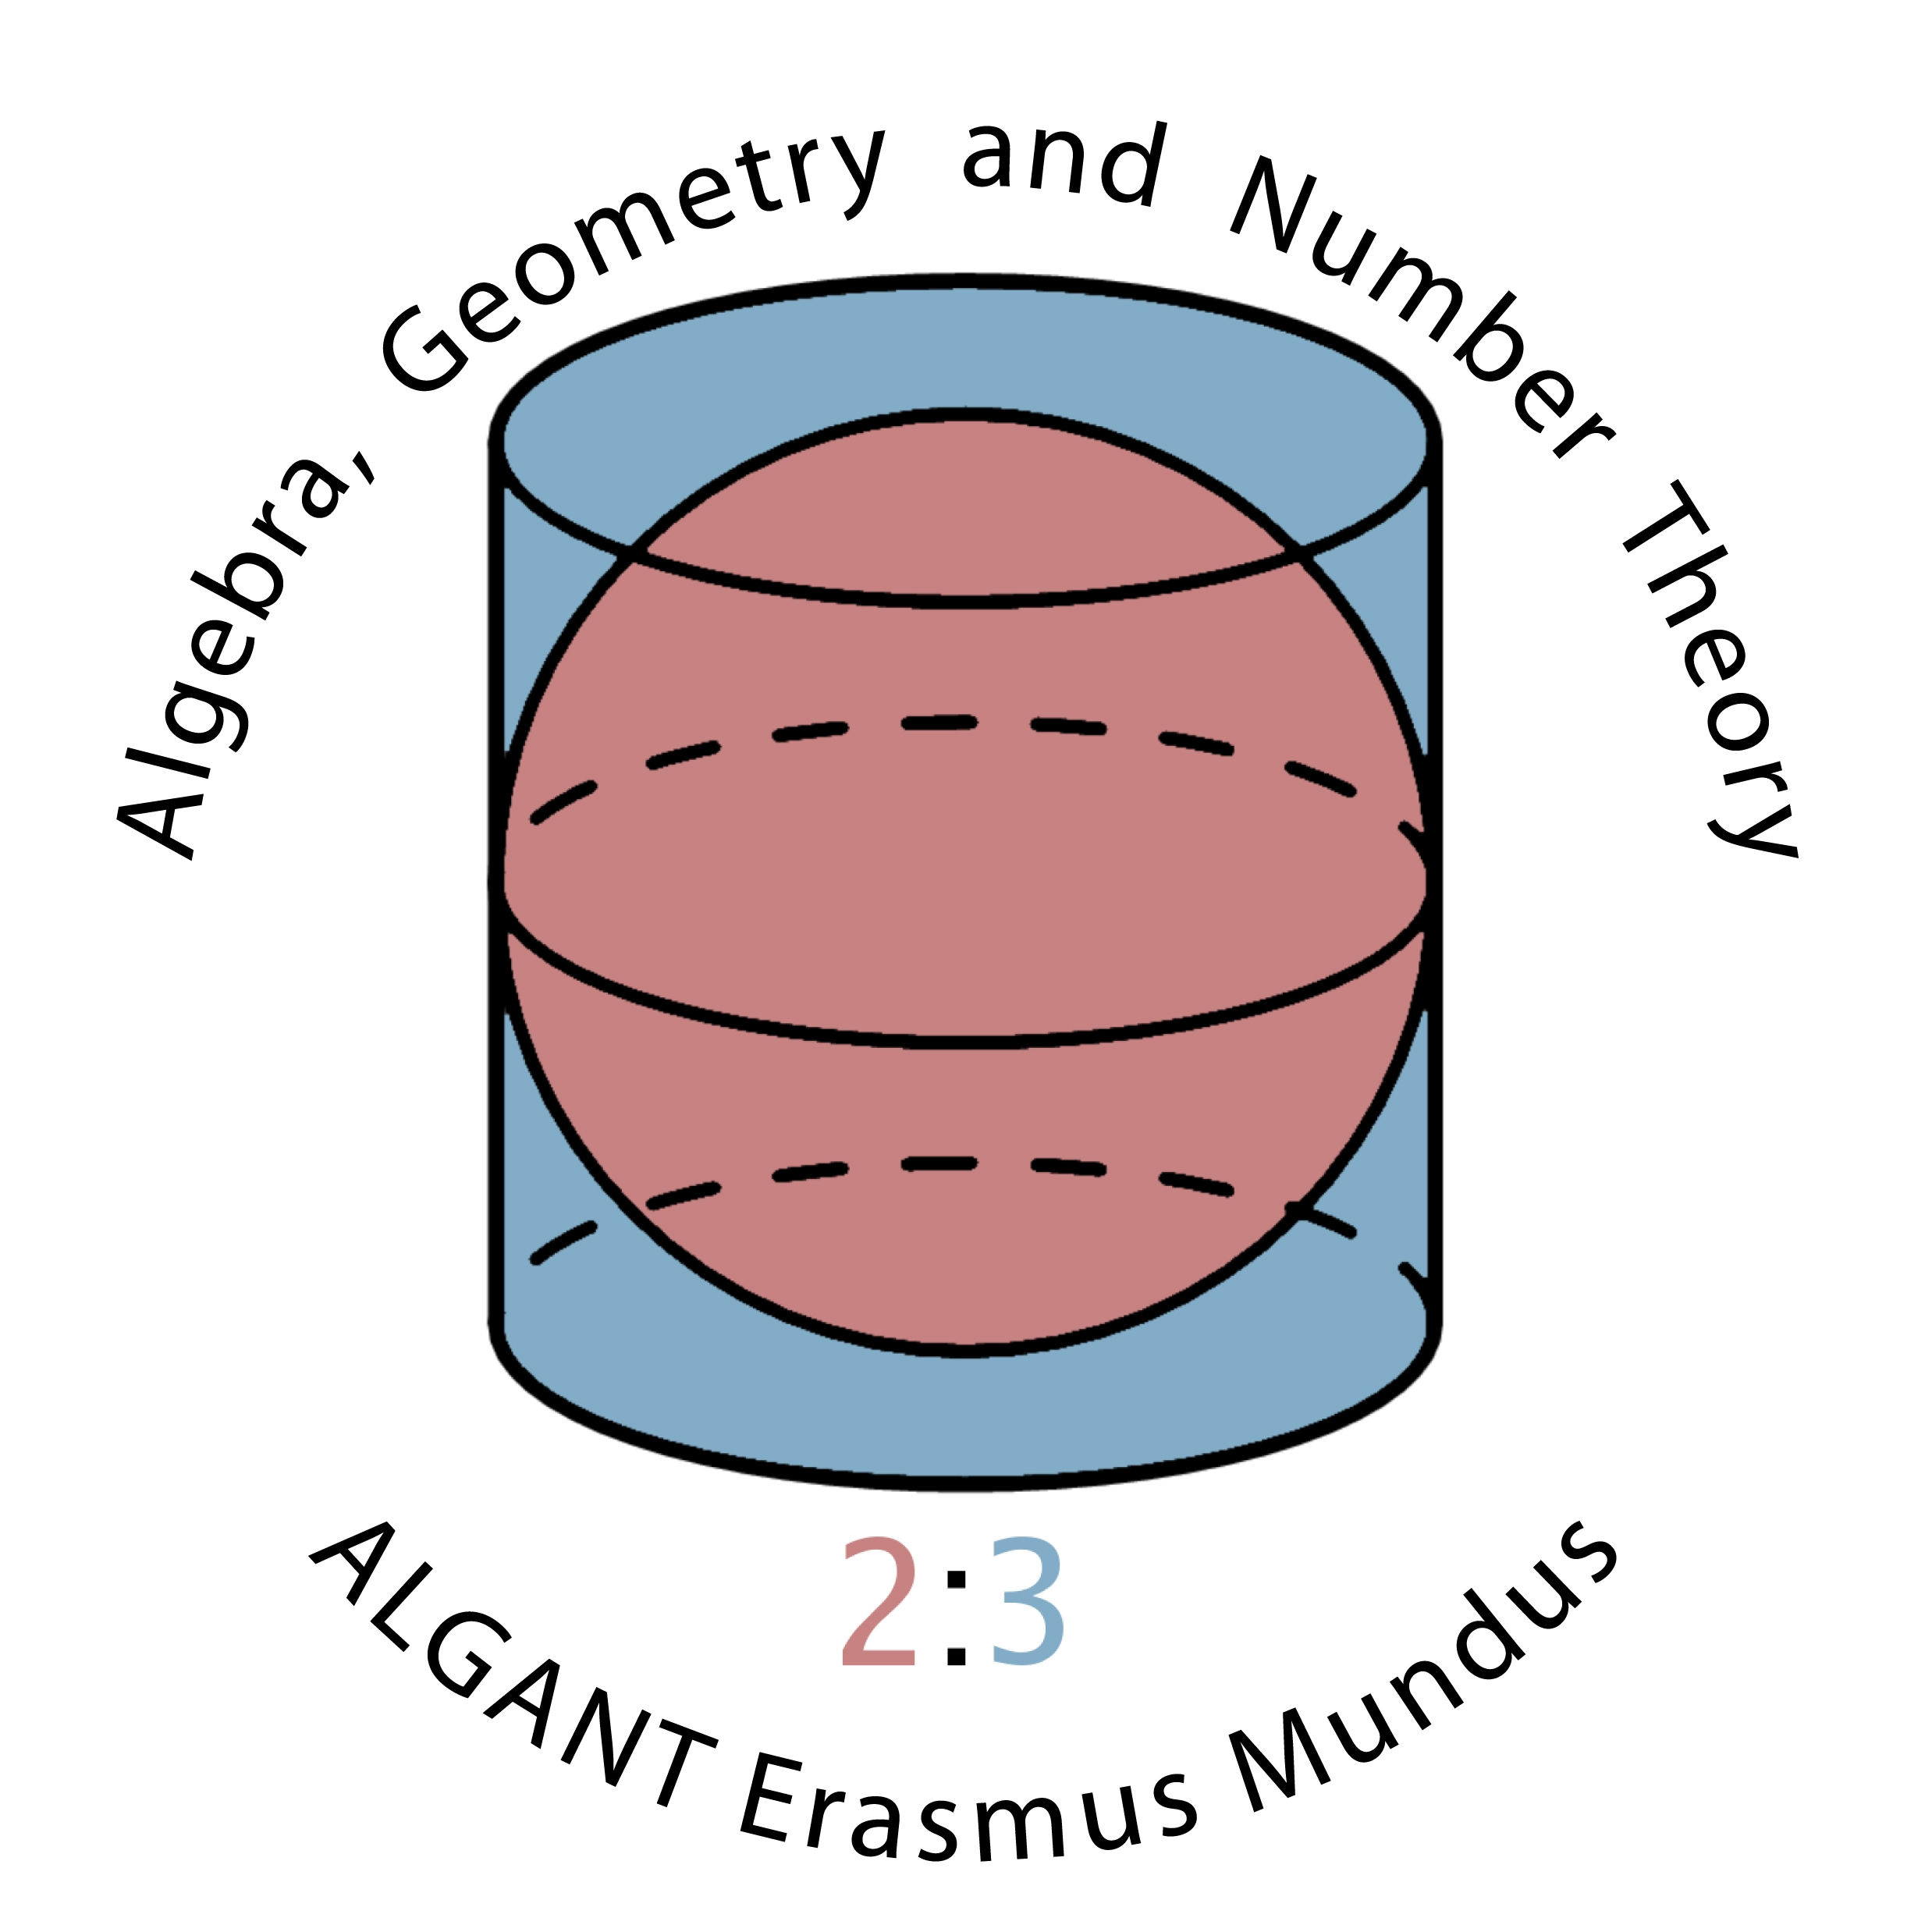 ALGANT ALgebra, Geometry And Number Theory